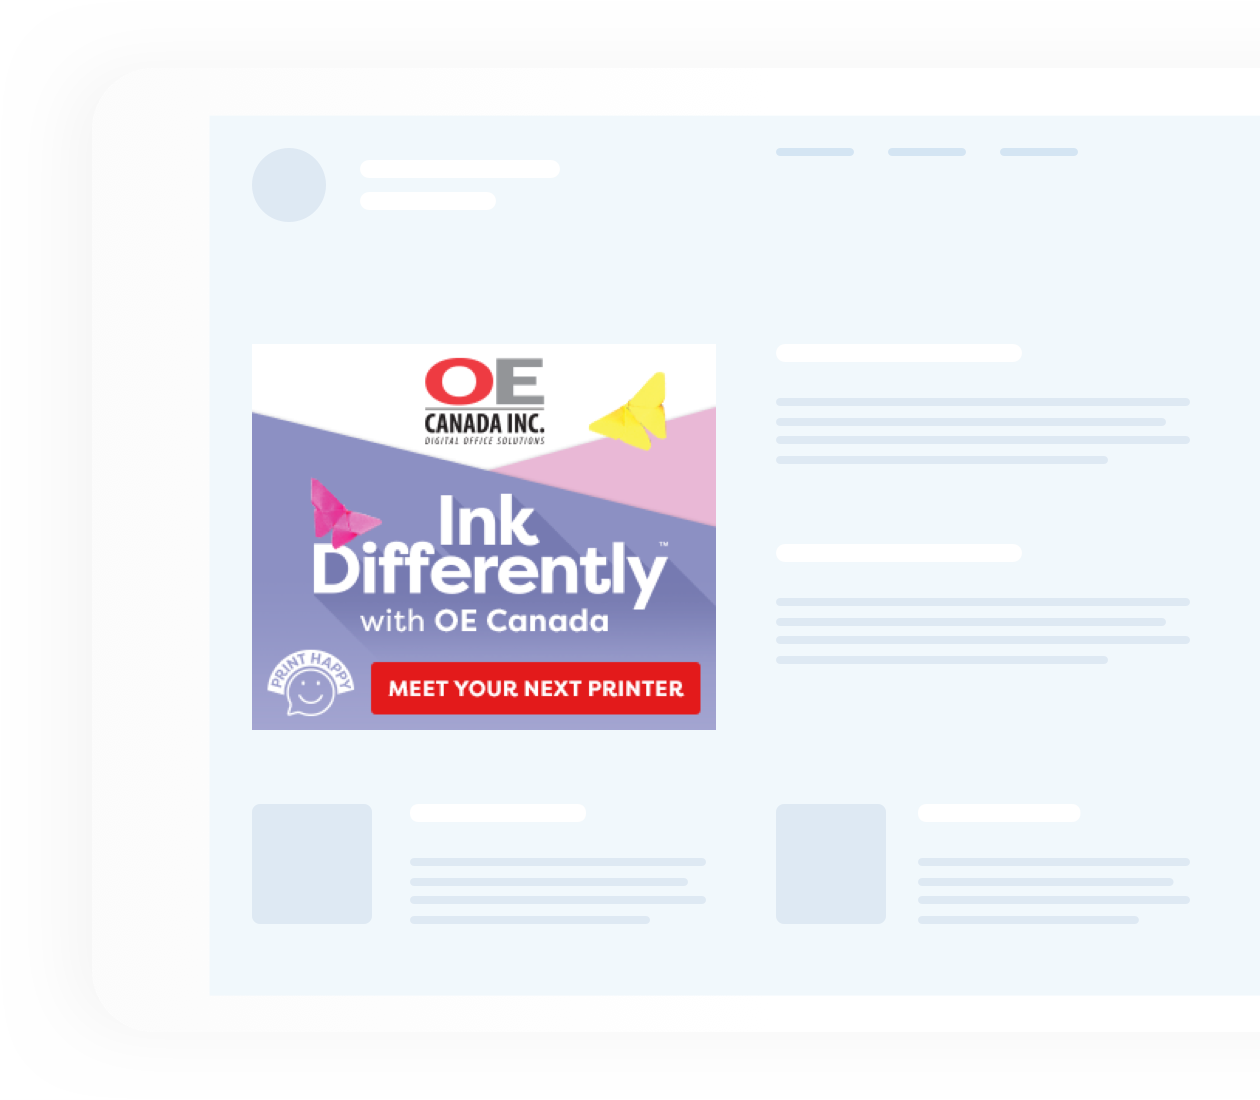 Ink Differently OE Canada Advertisement on a website template